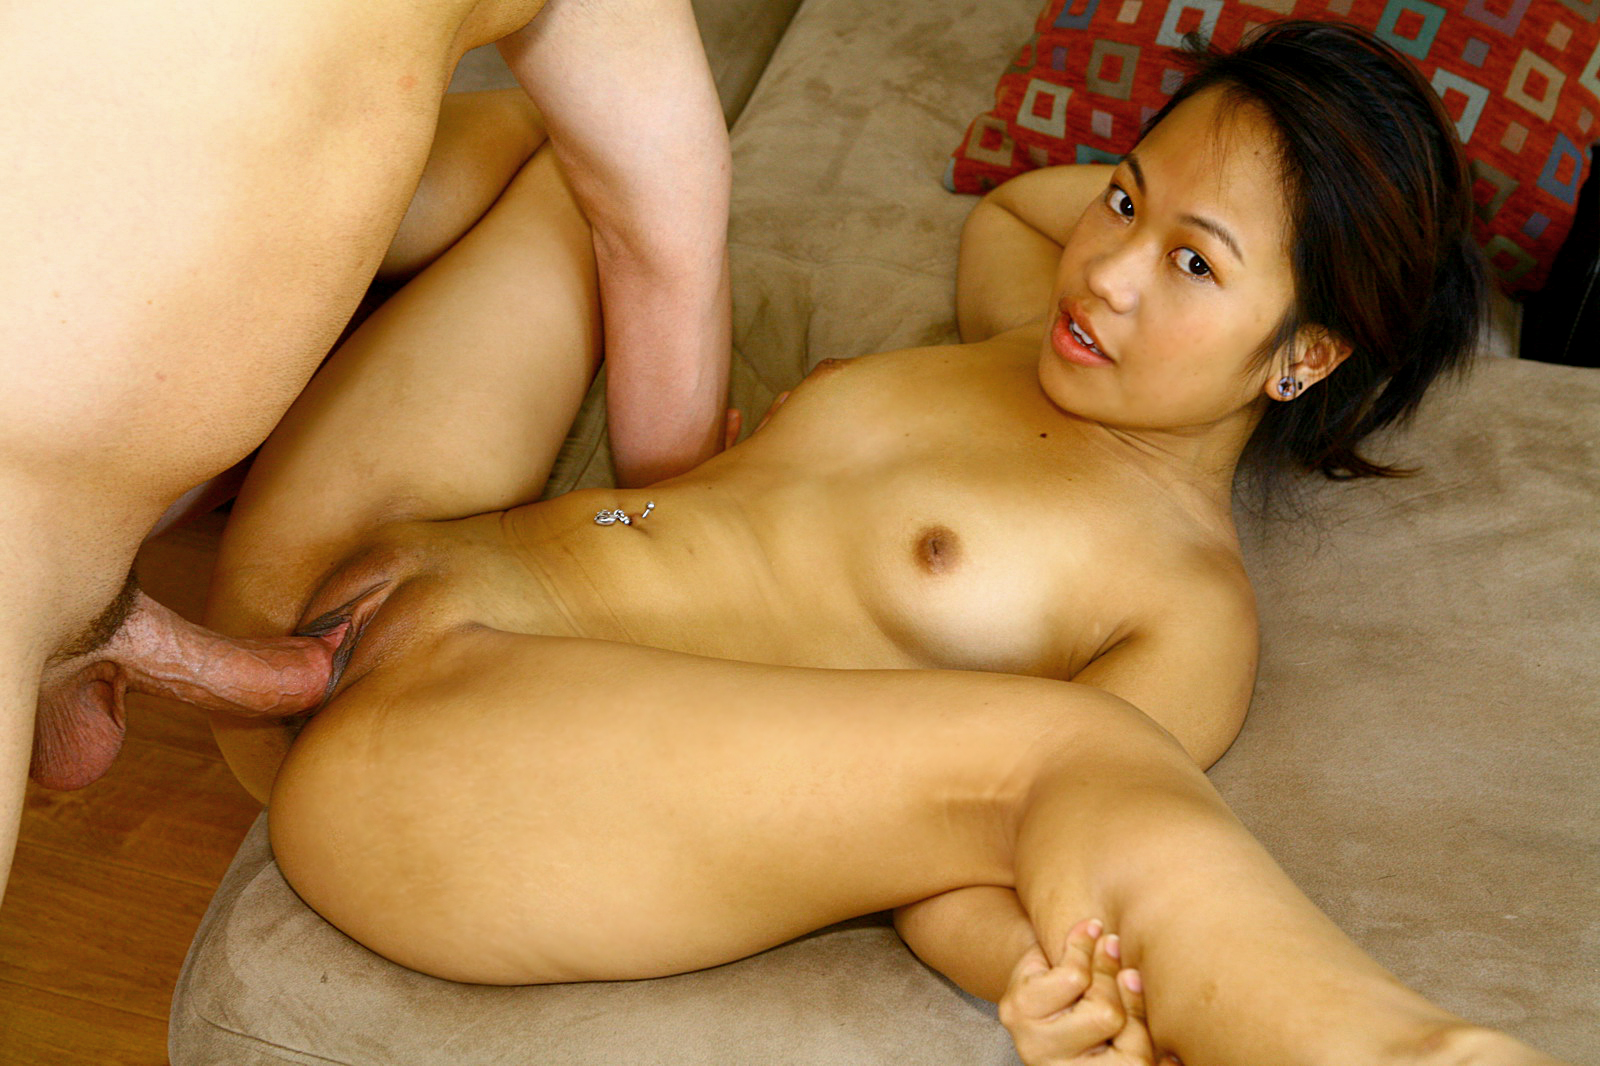 women virgin deep with cock